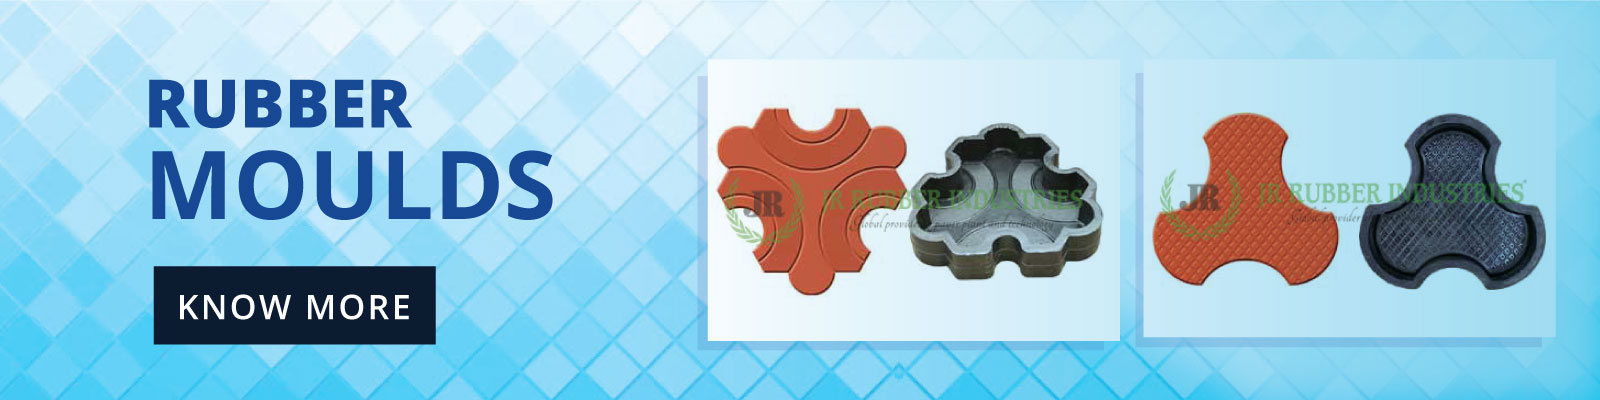 rubber paver mould manufacturers